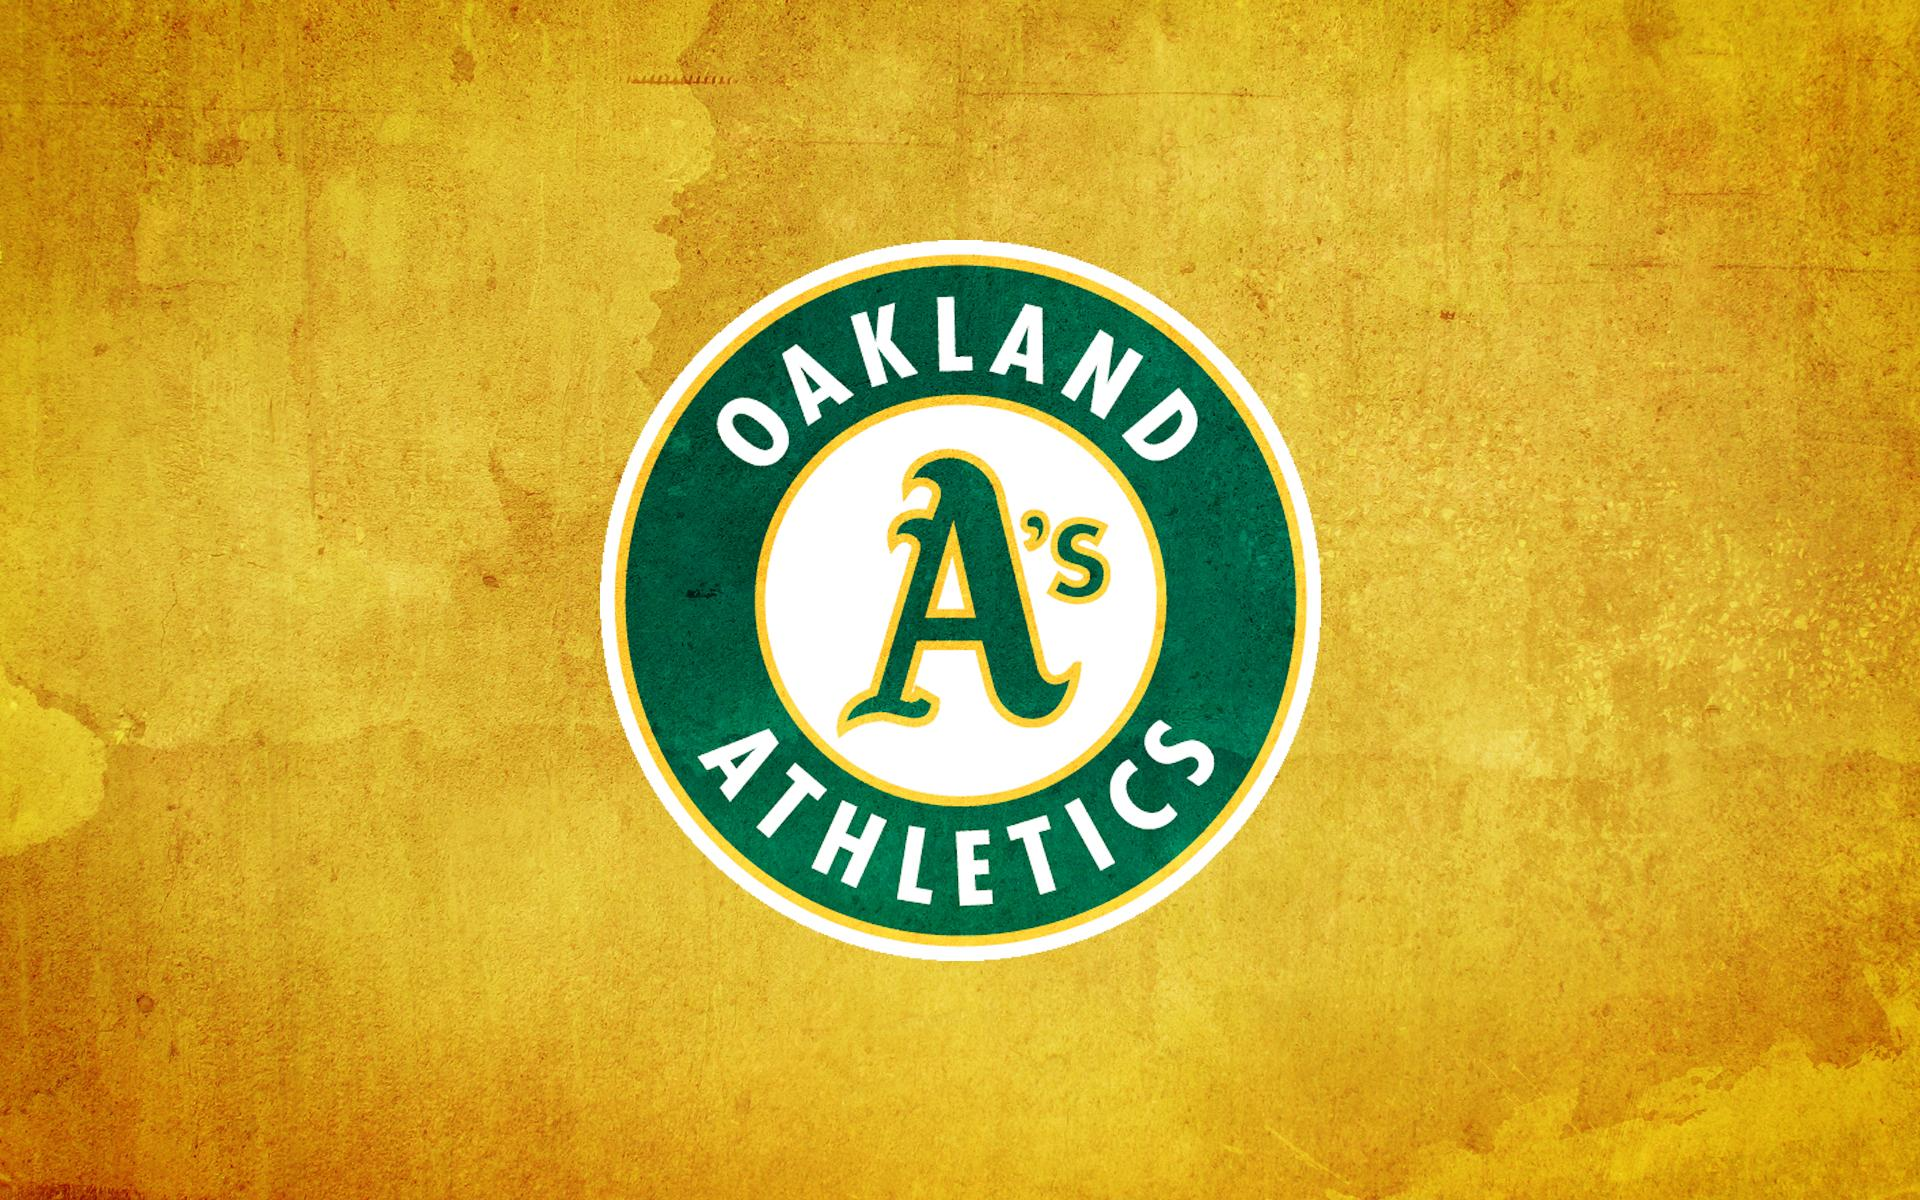 1920x1200 - Oakland Athletics Wallpapers 8